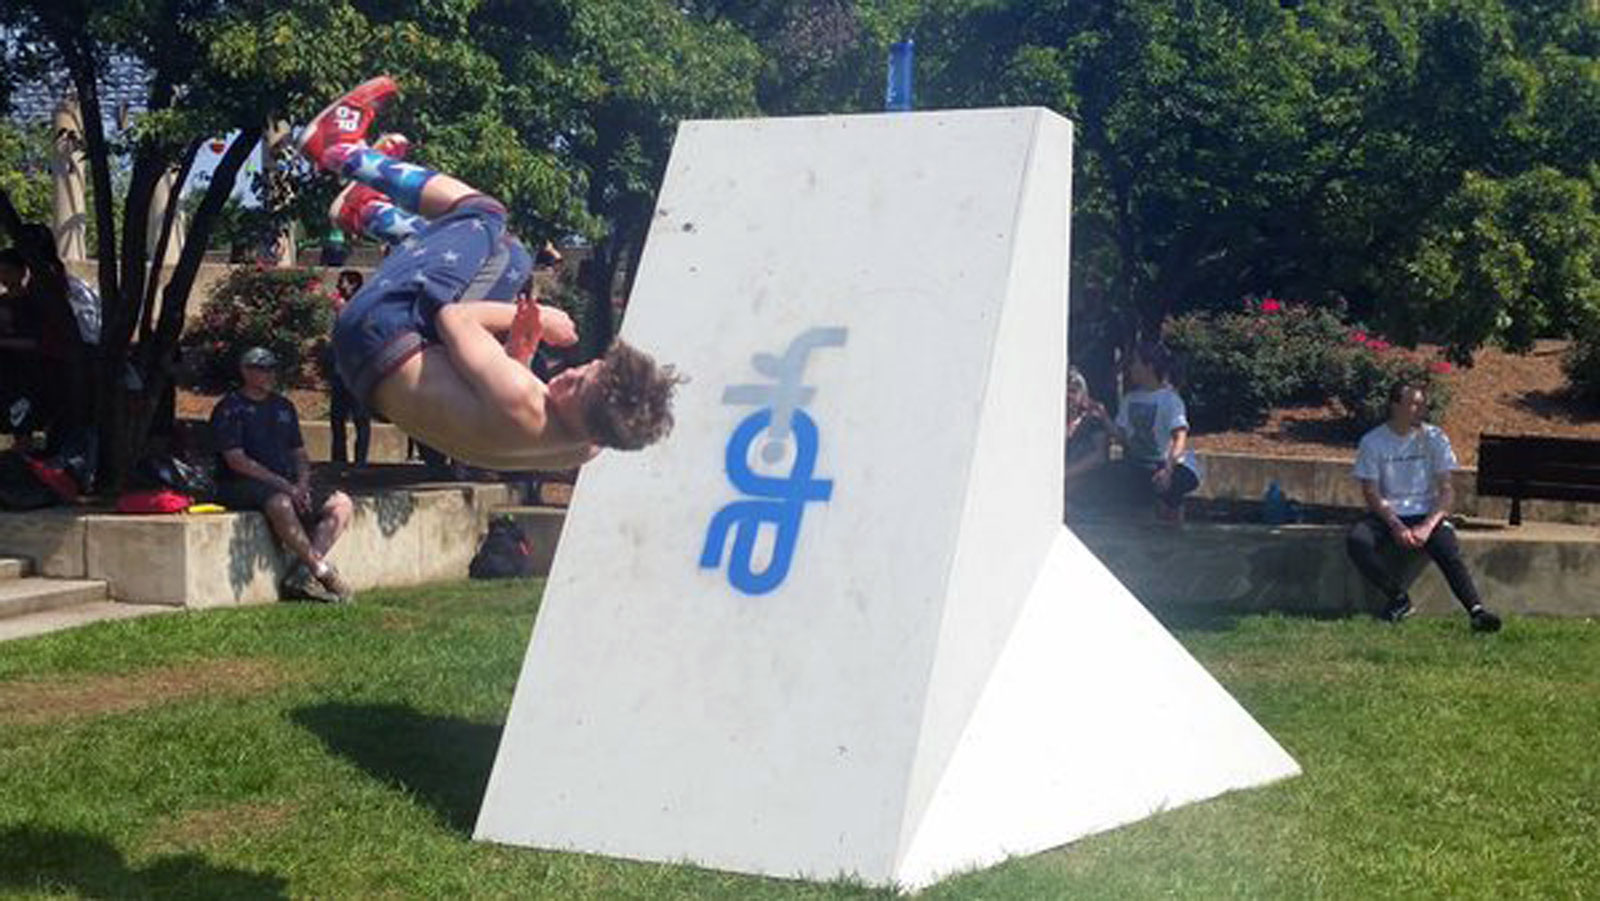 11th annual parkour festival takes over Rosslyn park